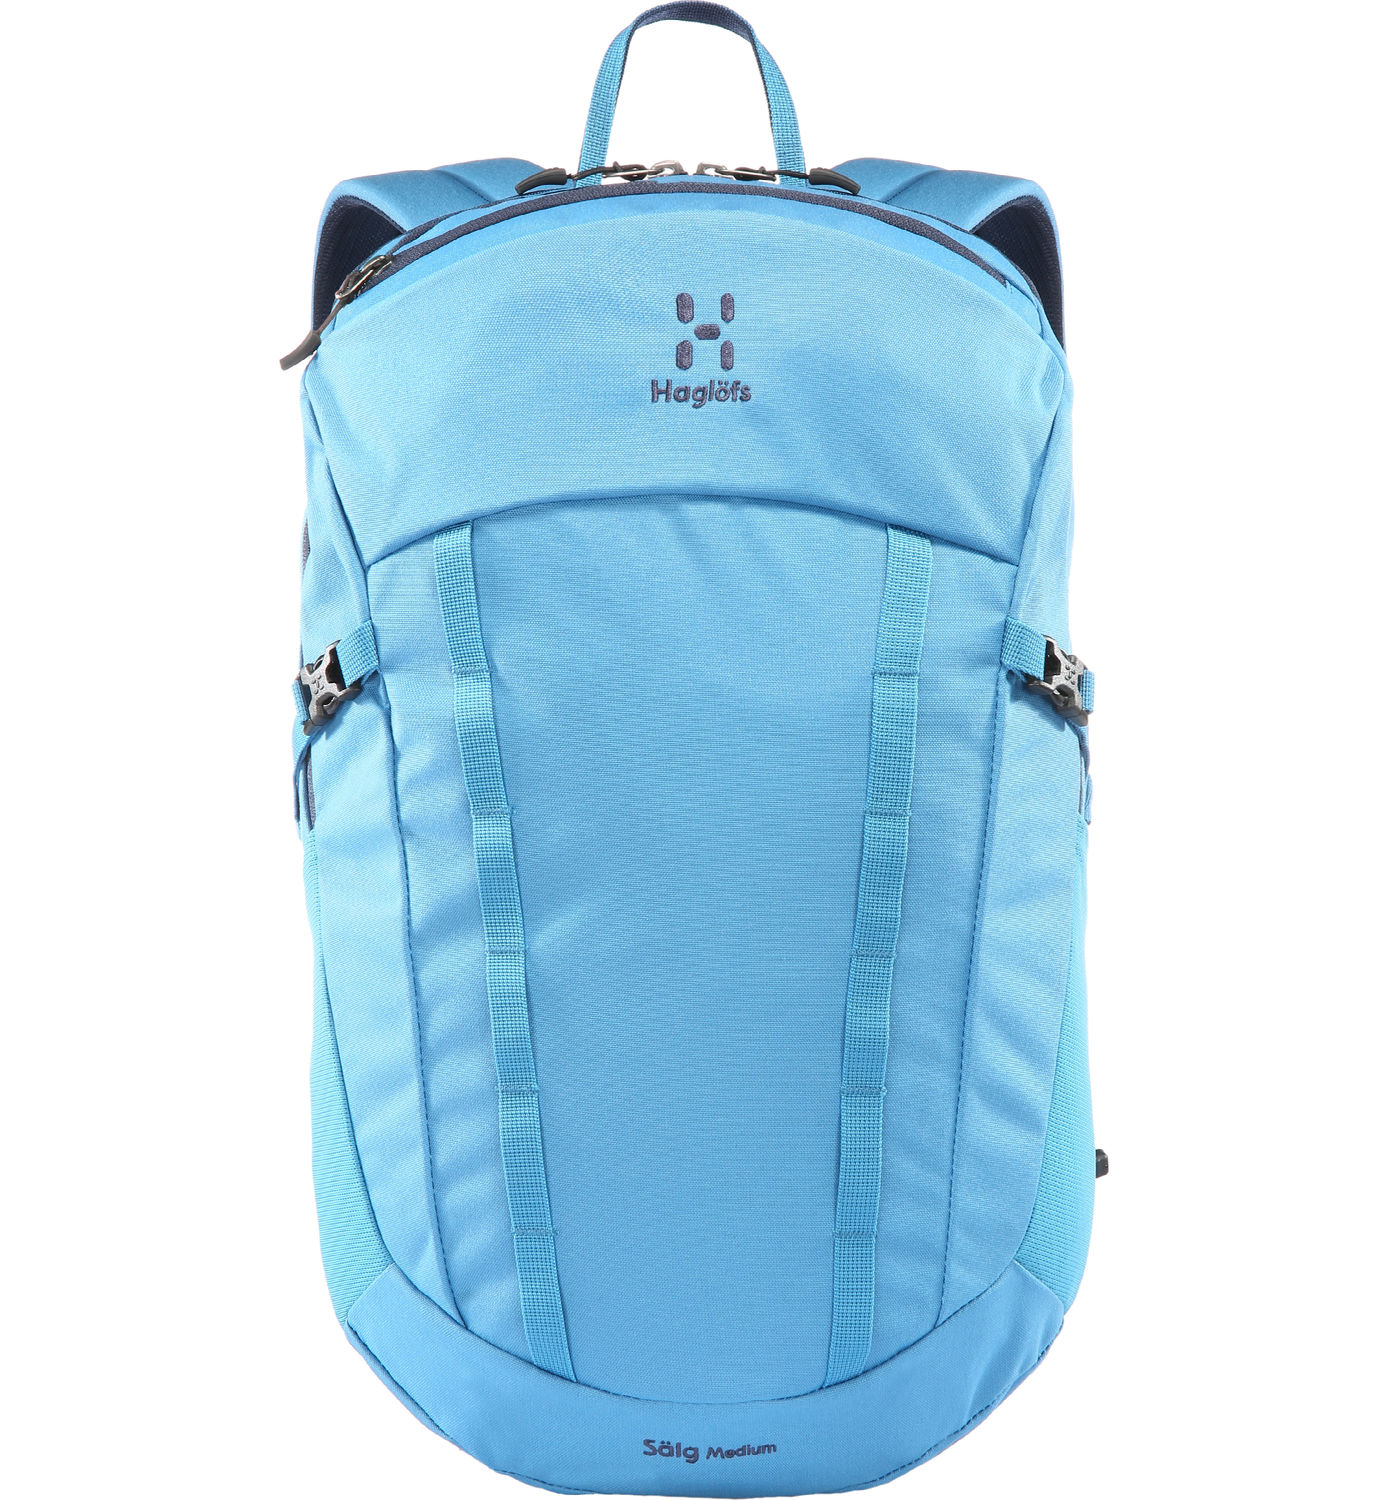 Рюкзак Haglofs Salg Medium Blue Fox/Tarn Blue - Фото 2 большая